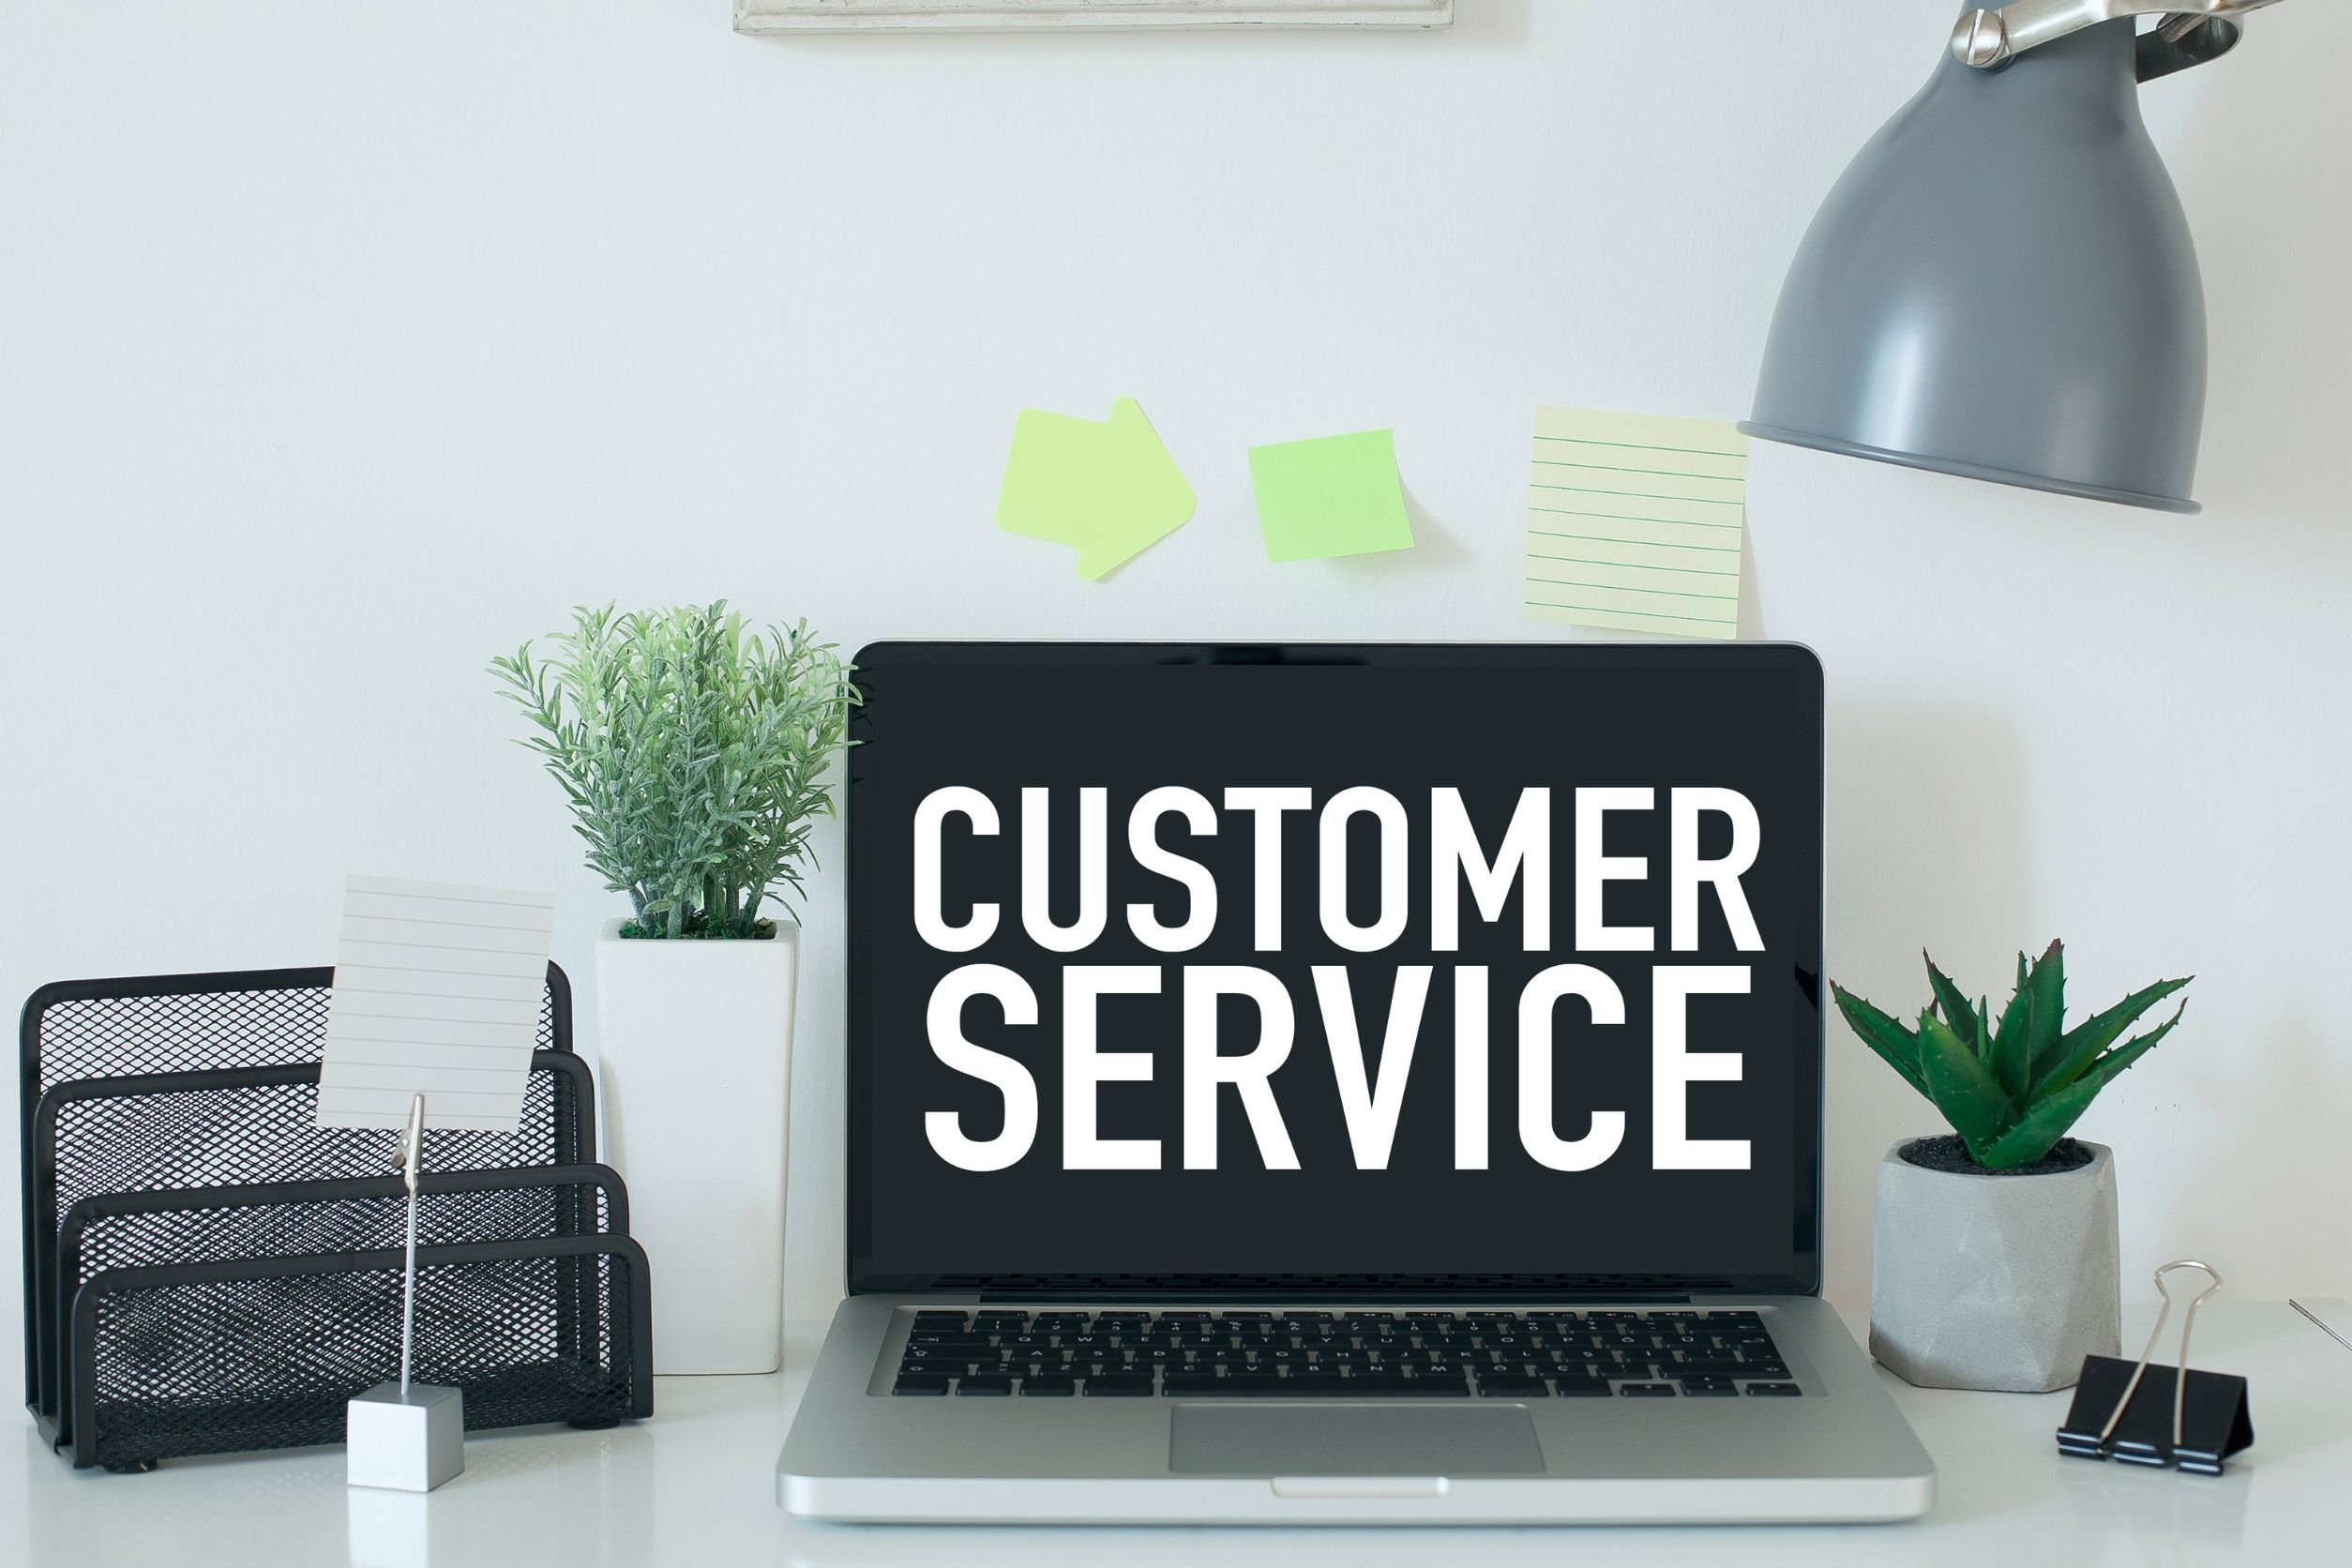 Customer services message displayed on laptop that is on desk next to plant and lamp